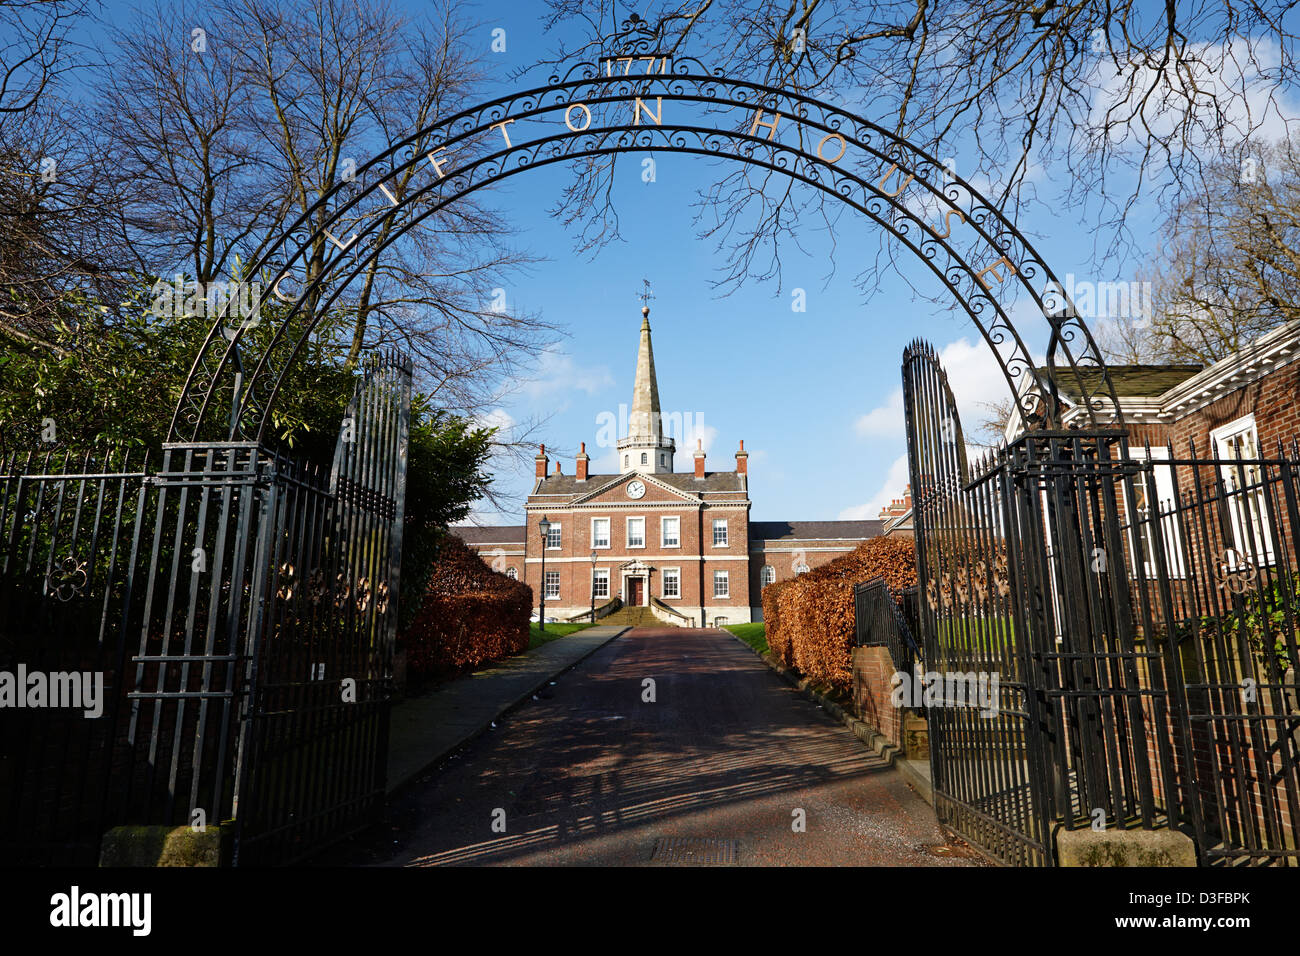 Clifton house former poor house in north Belfast Northern Ireland UK - Stock Image